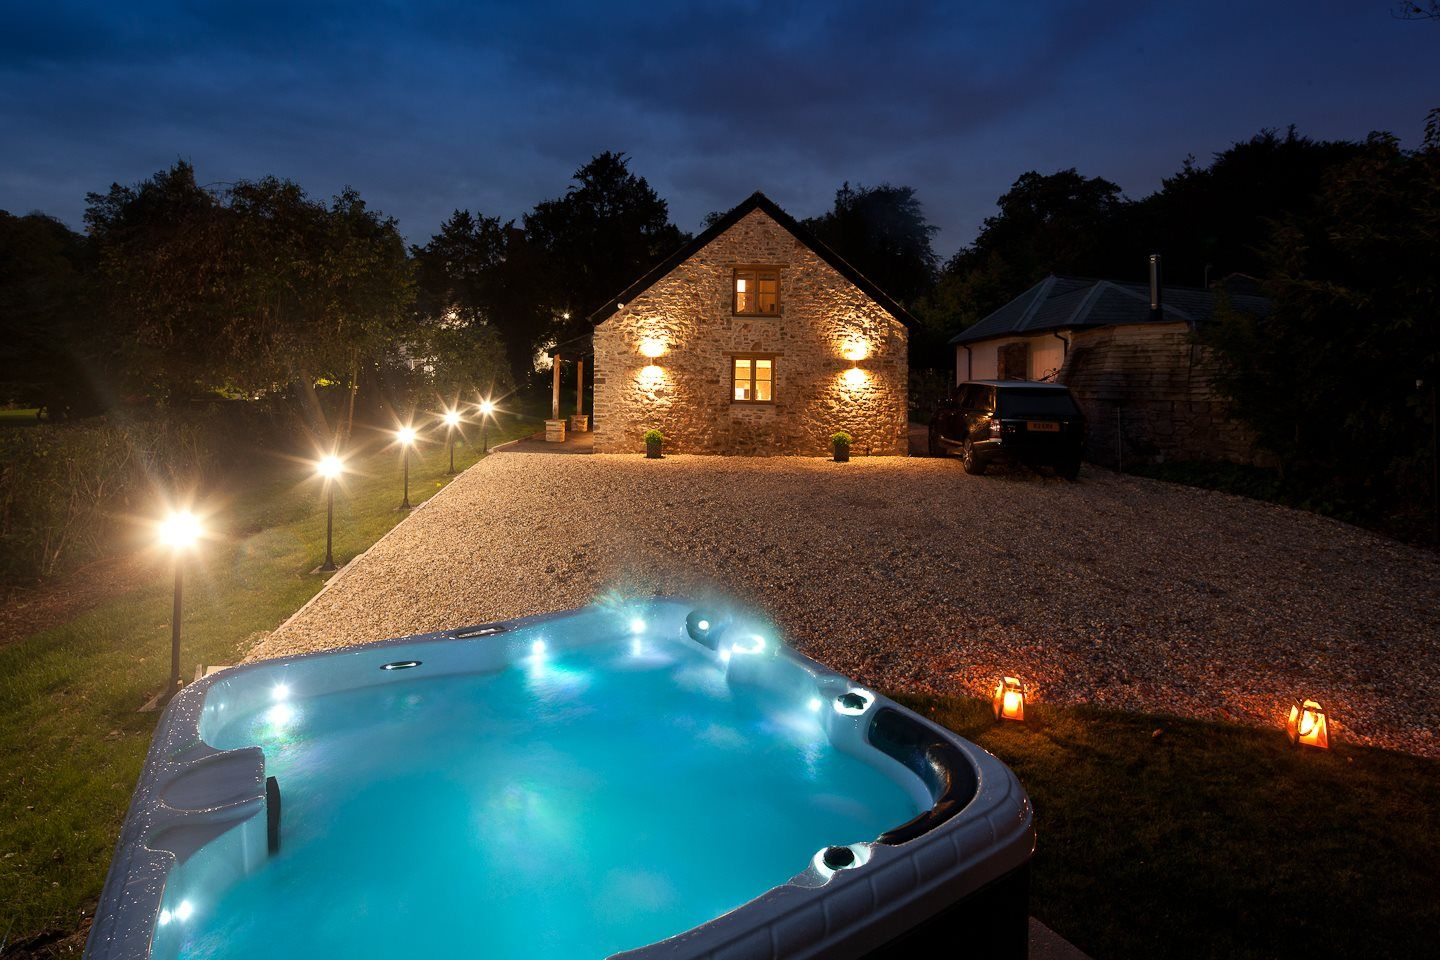 Cwrt Yr Ala Barns Dinas Powys Cardiff Glamorgan Wales Uk Travel Holiday Accommodation Self Catering Family Fri Holiday Cottage Hot Tub Swimming Pools